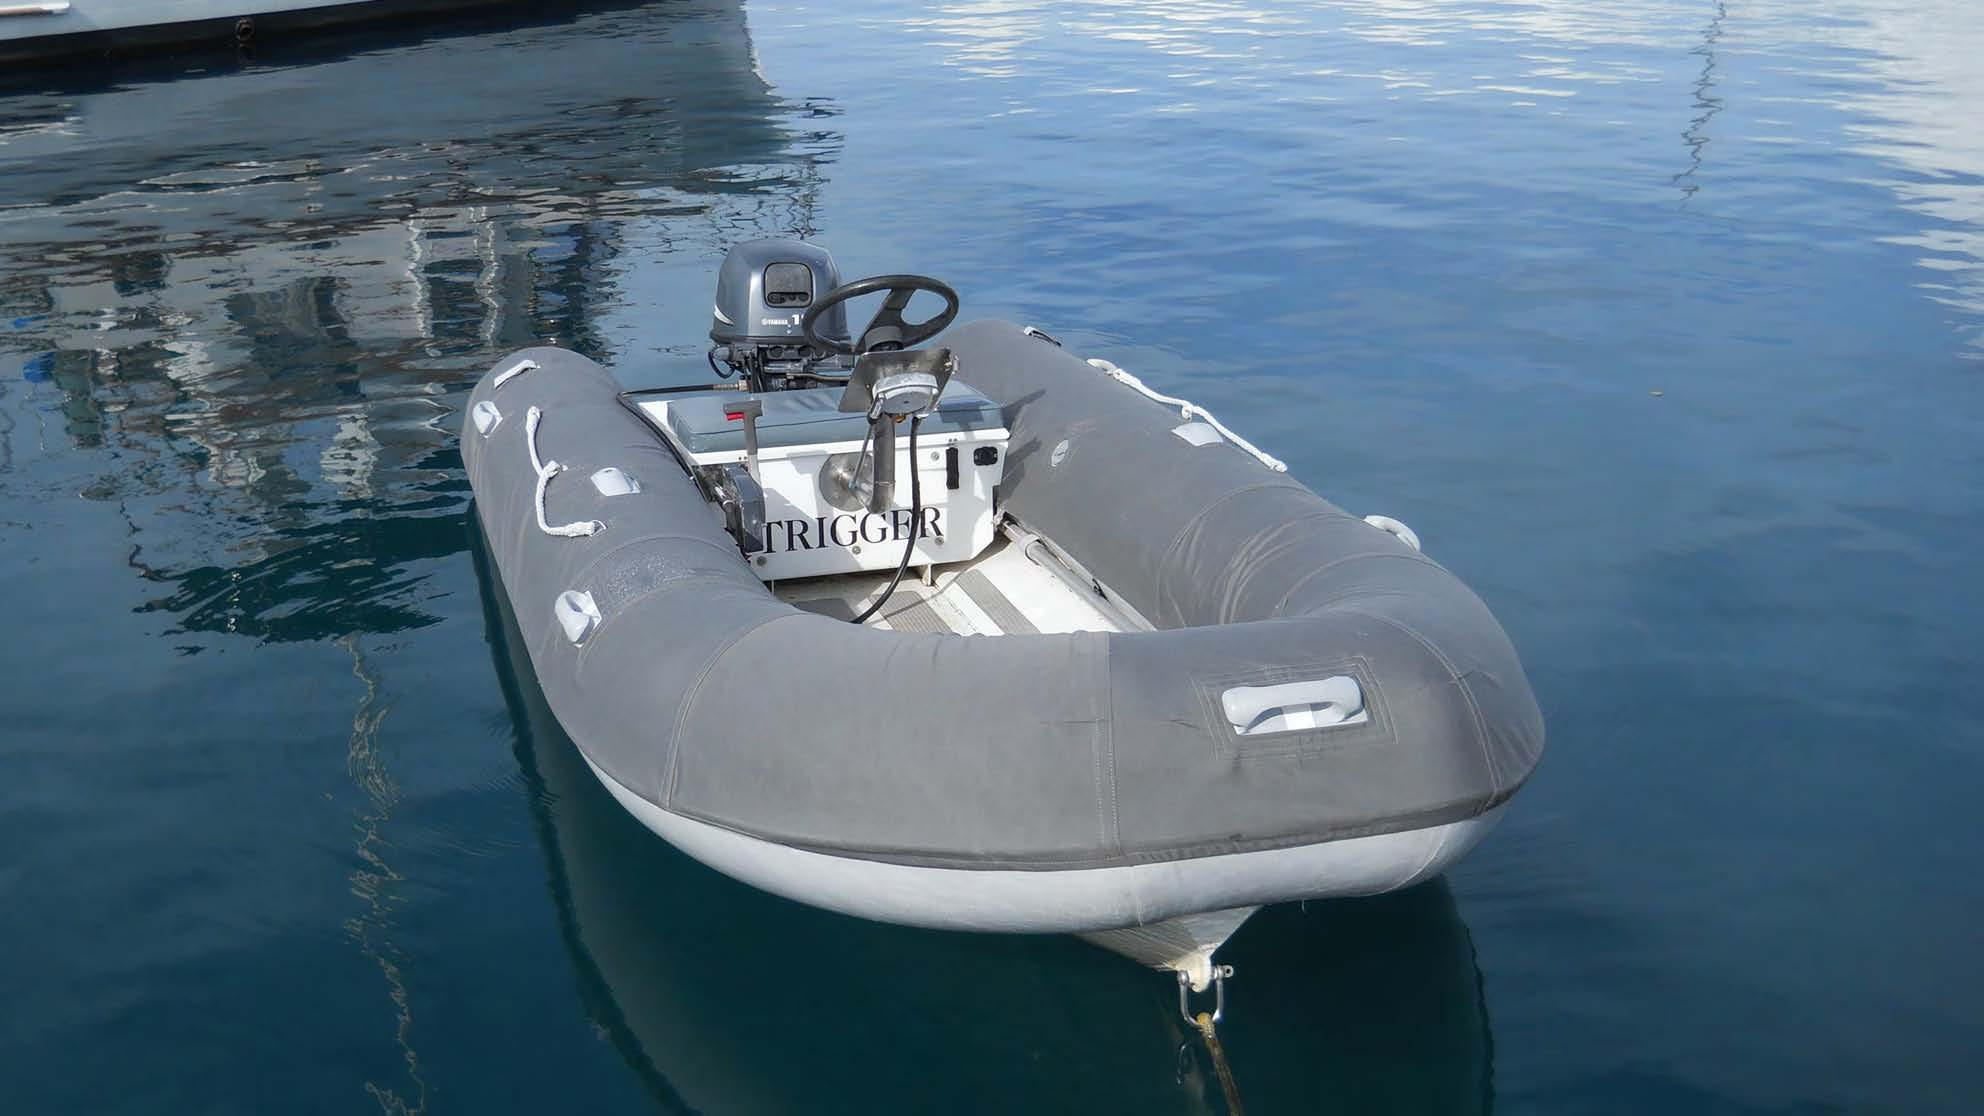 Repairing a PVC or Hypalon Dinghy | Do-It-Yourself Advice Blog